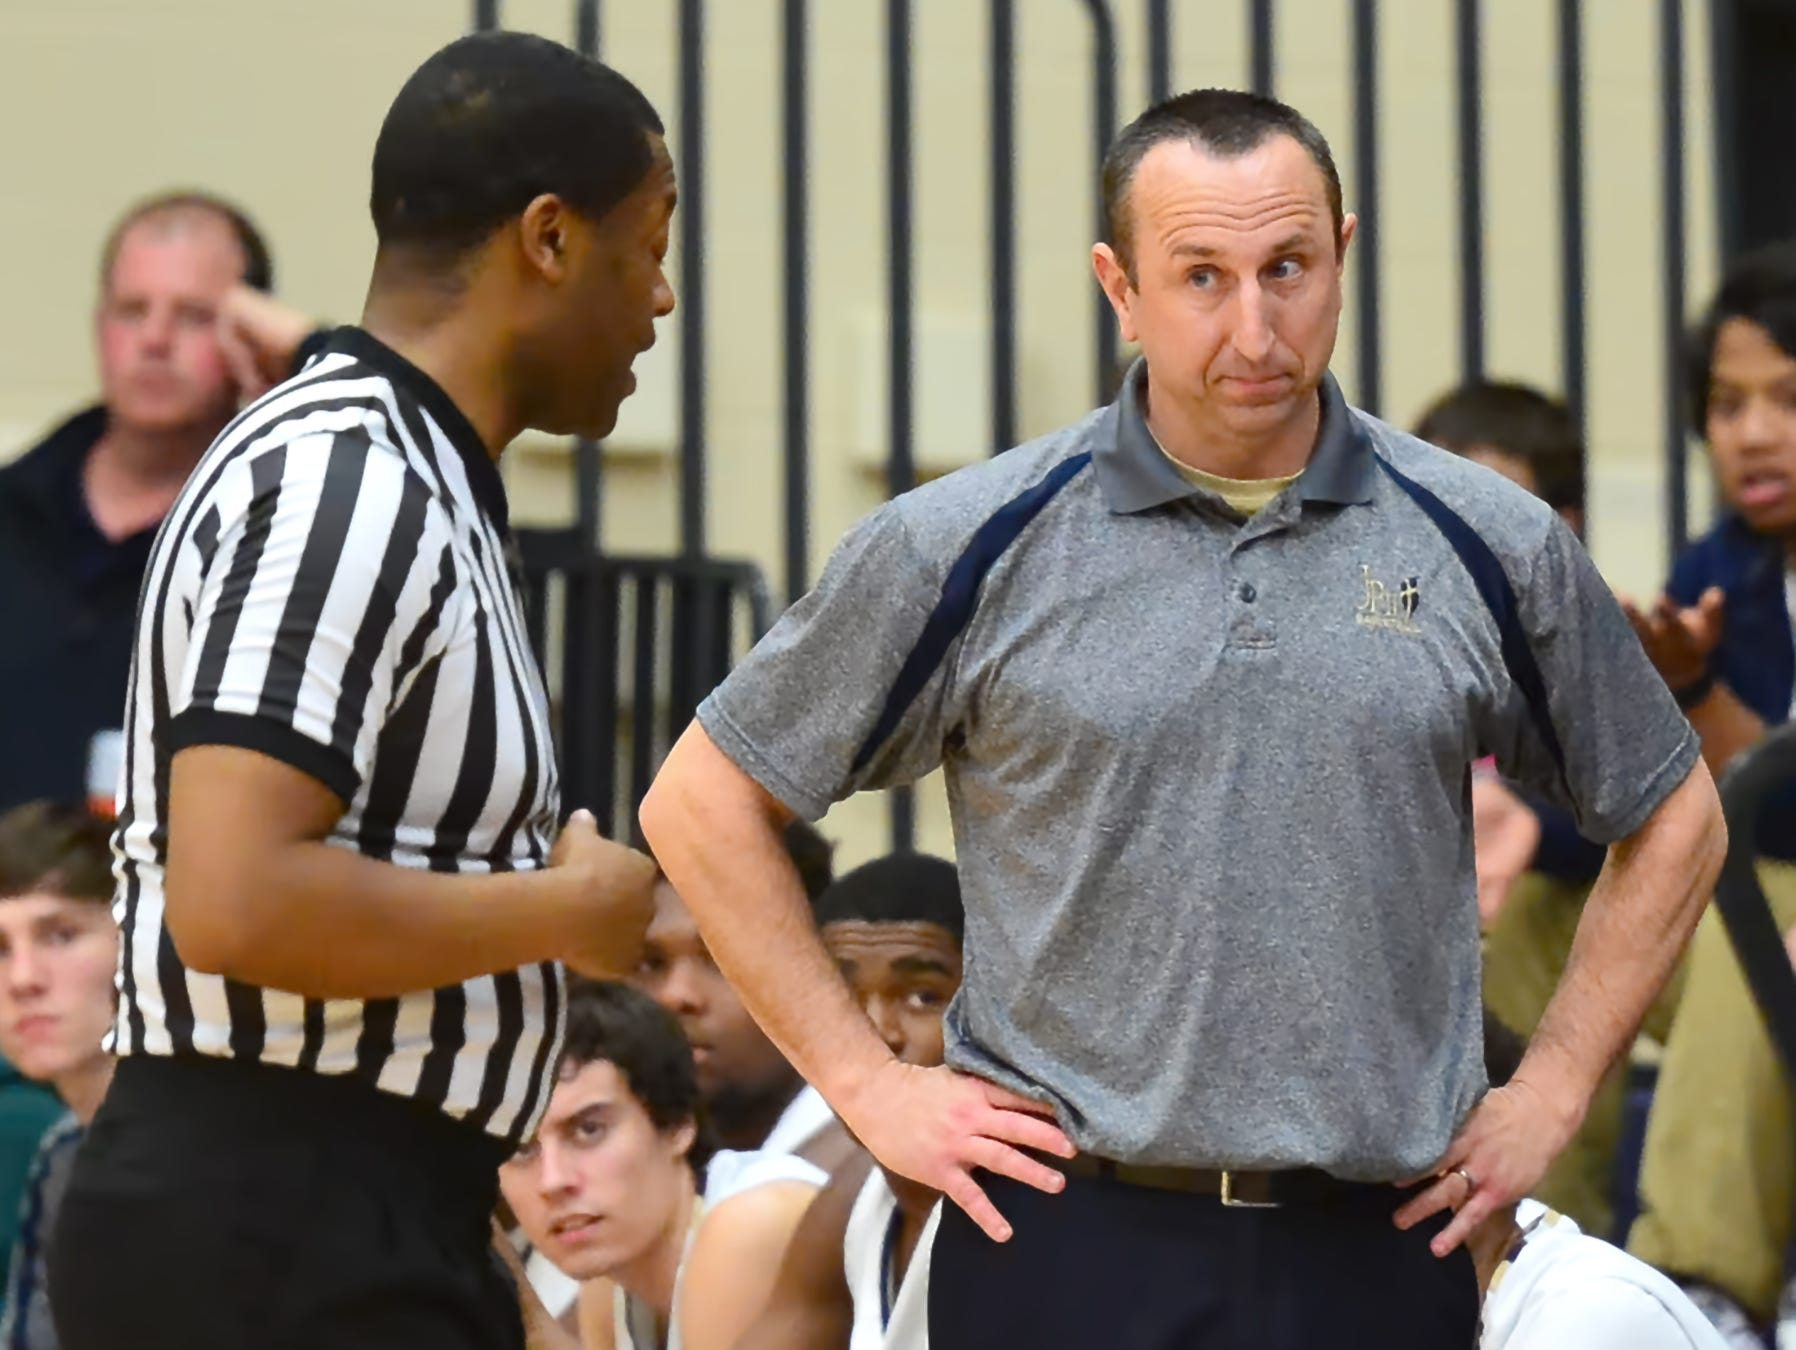 Kip Brown gets an explanation from an official during a game earlier this year. Brown - who compiled a 90-57 record over five seasons at Pope John Paul II High - has accepted the head-coaching position at his alma mater, Beech High.